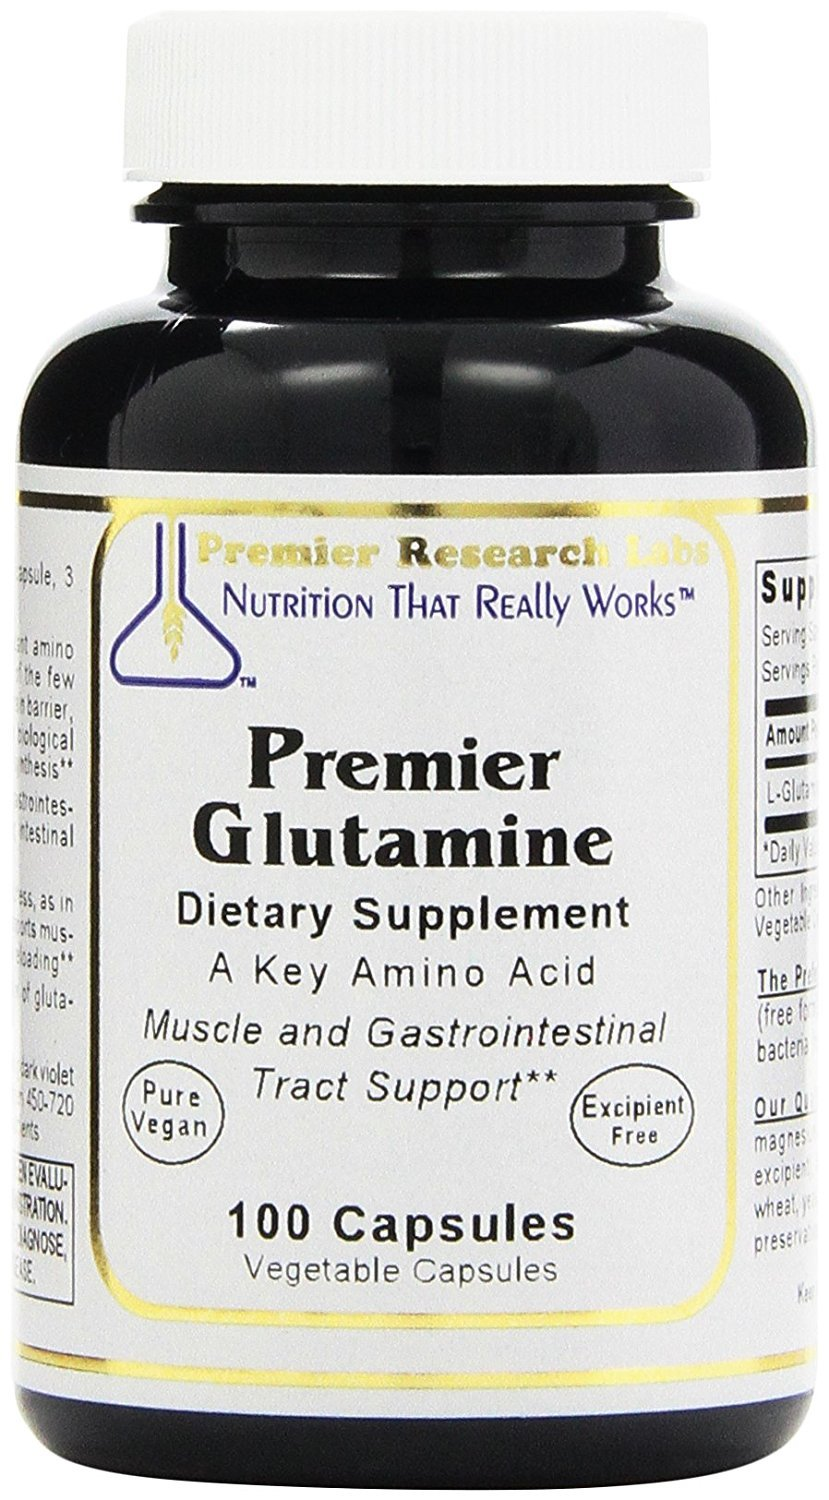 Glutamine by Premier Research Labs -300 VCaps - 3 Bottles Premier Muscle and Gastrointestinal Tract Support